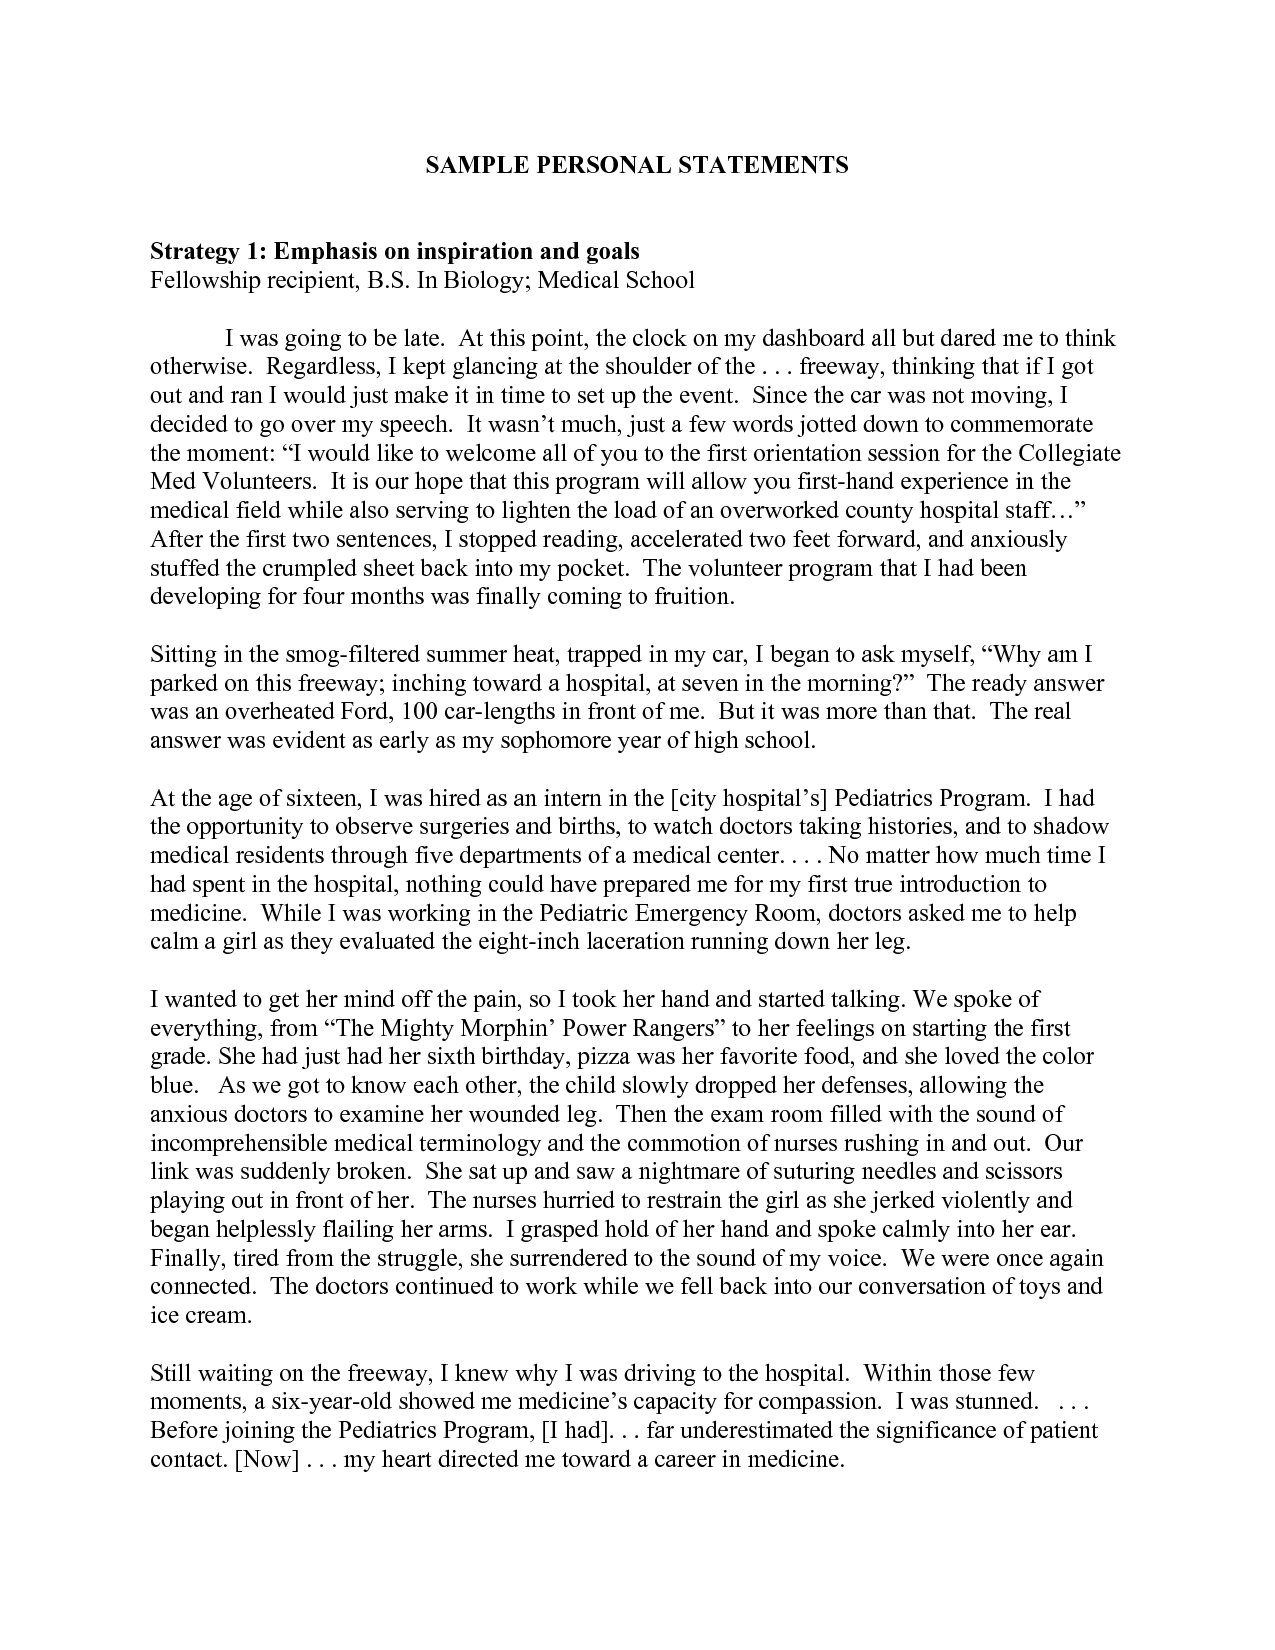 my graduate school essay 4 sample graduate school essays #1 from working poor to elite scholar one of the proudest accomplishments of my life was earning my college degree, despite the fact that my early.